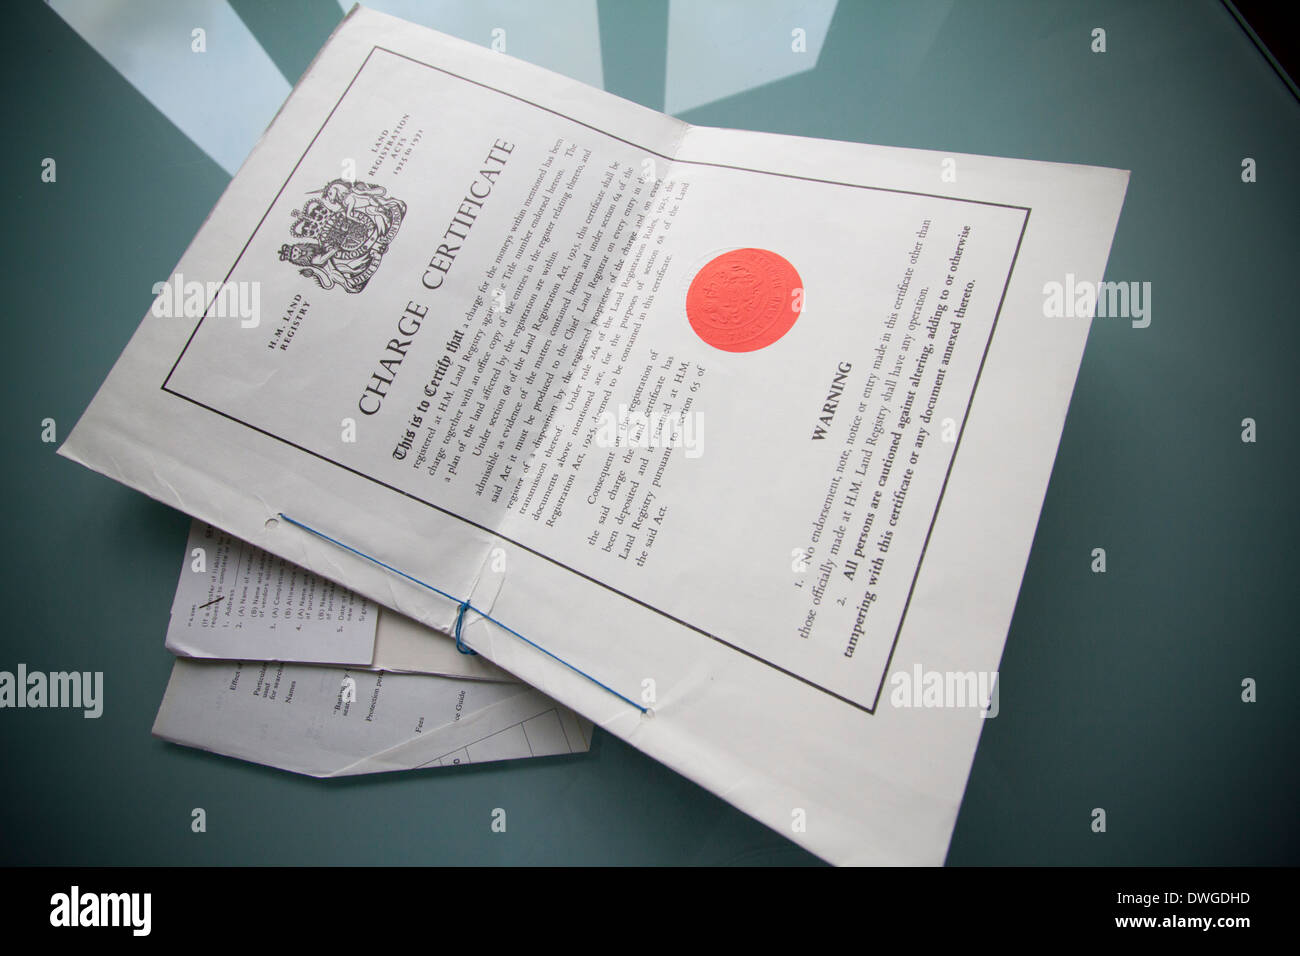 H M land registry charge certificate legal property document - Stock Image